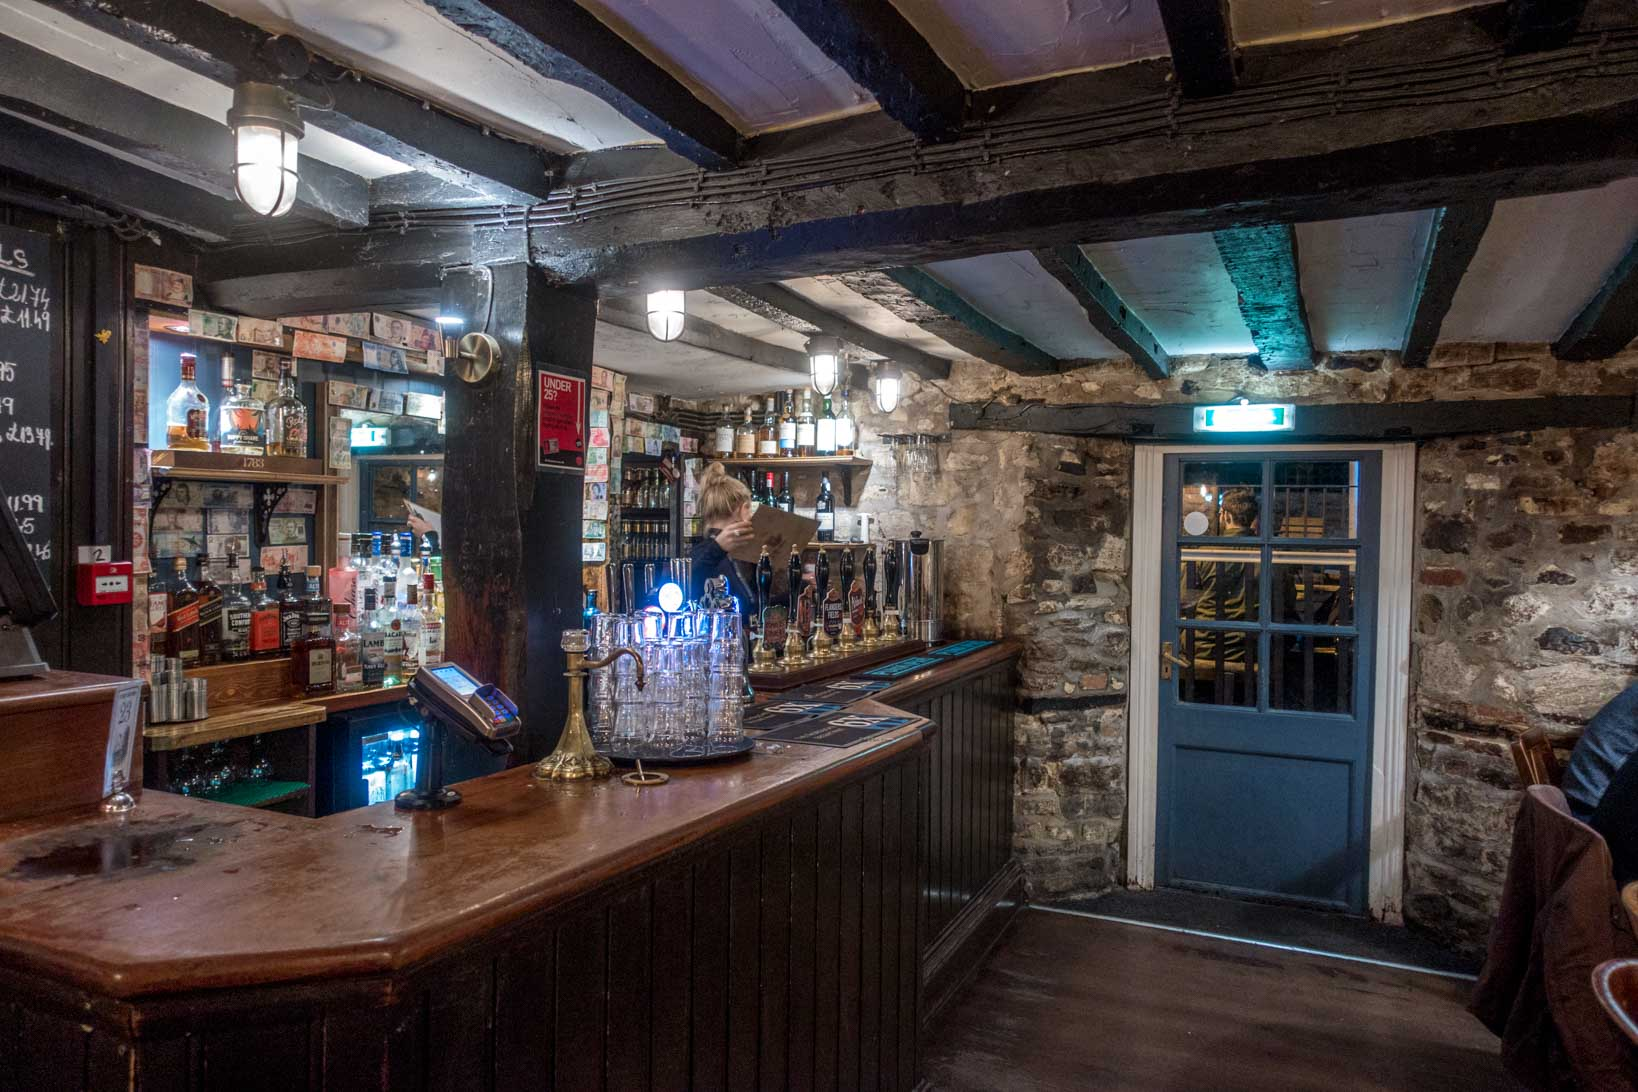 Bar, stone walls, and old wooden beams inside an historic pub